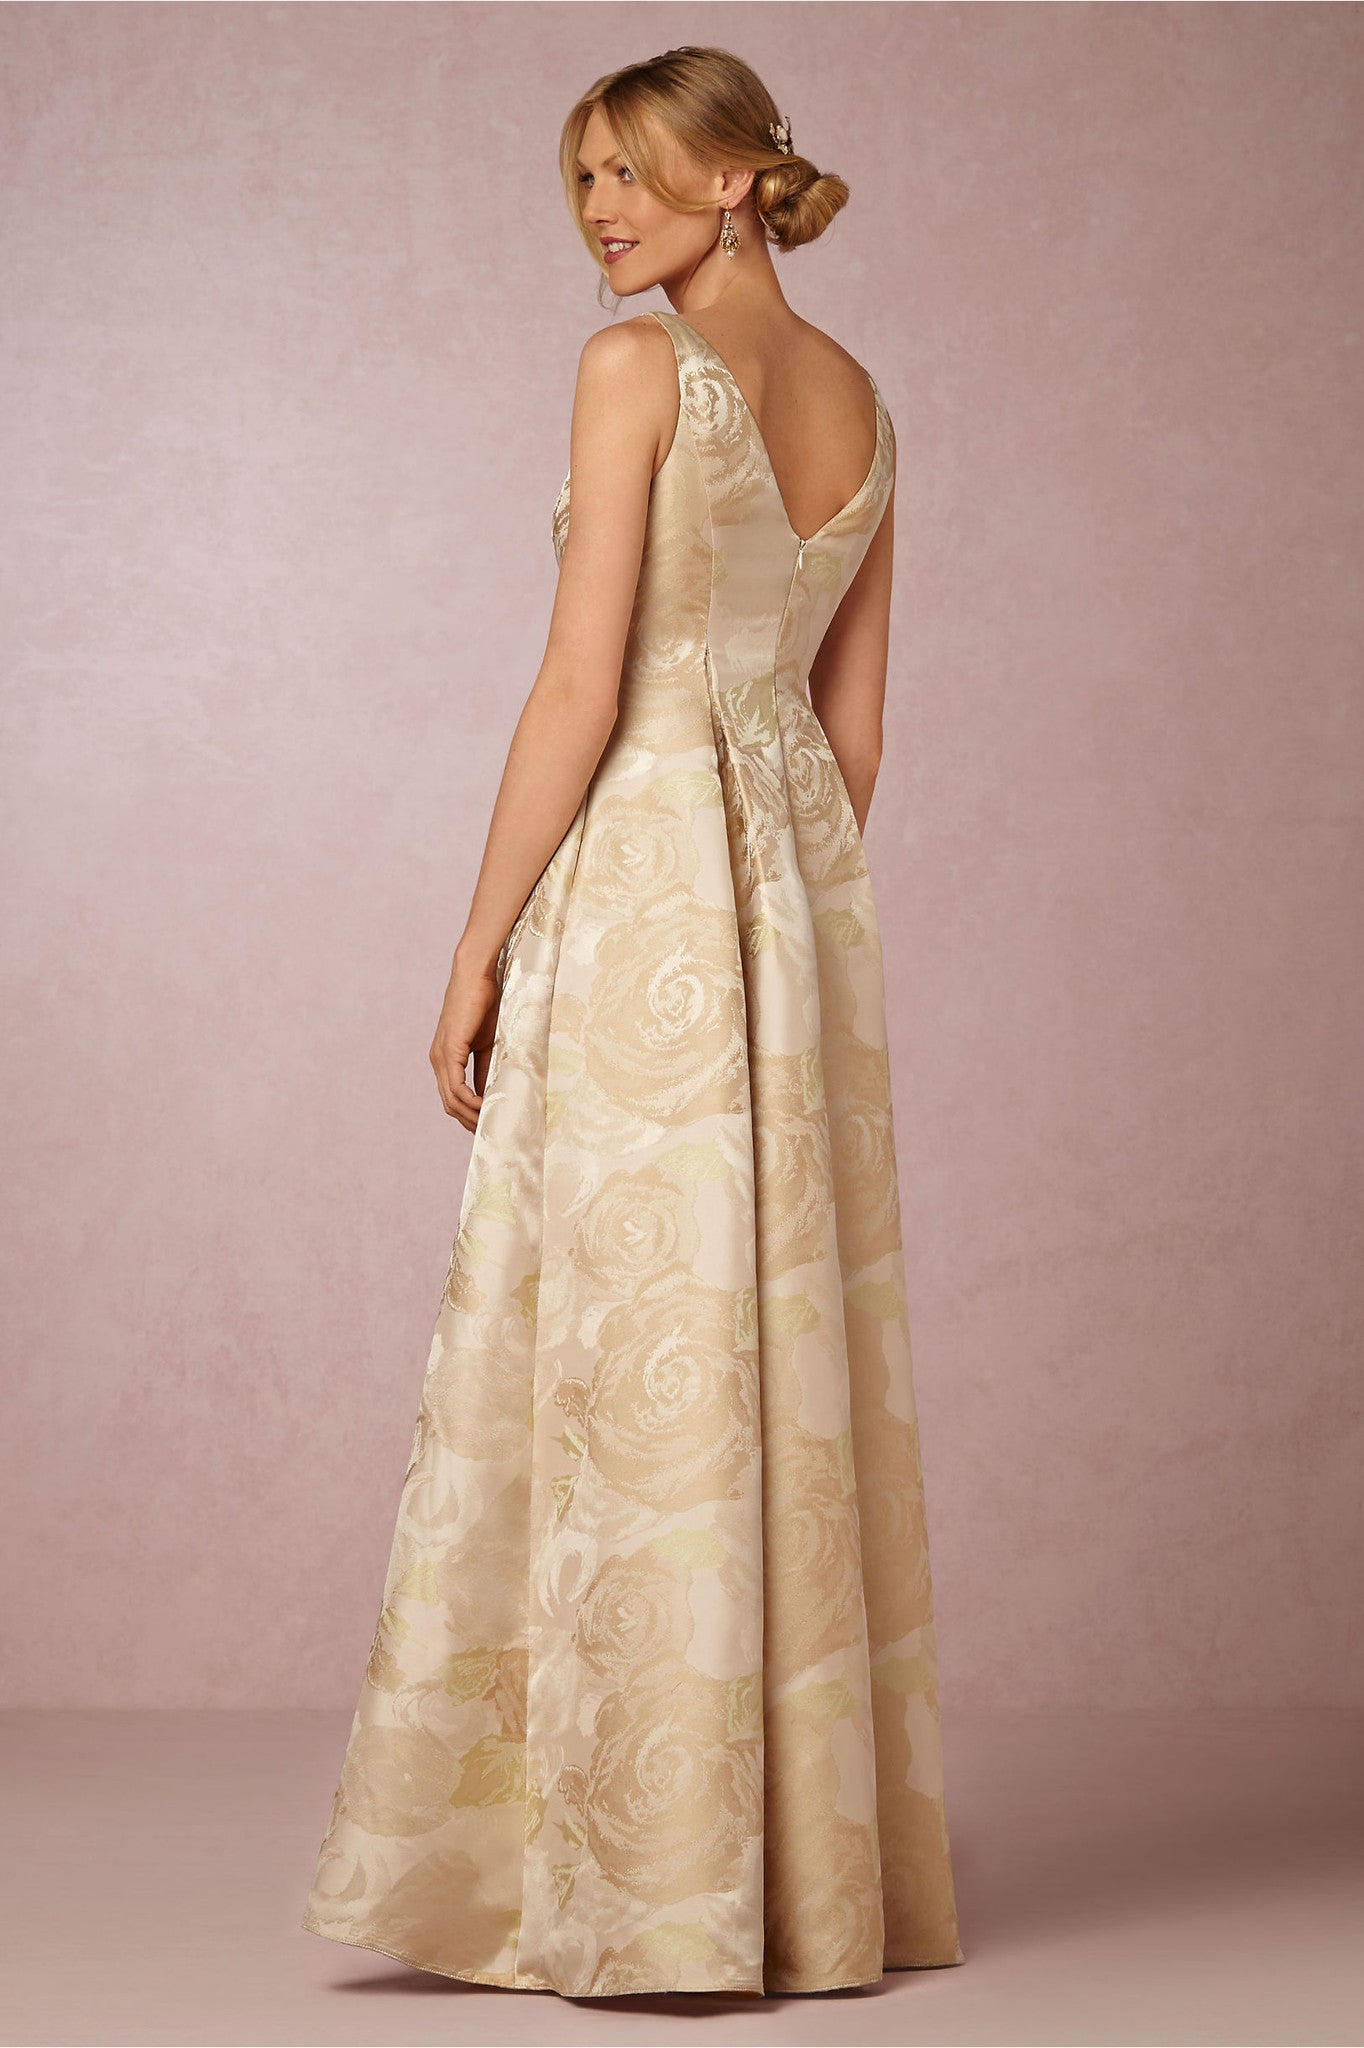 BHLDN Adrianna Papell Audrey Gown - Floral Champagne - Adinas Bridal